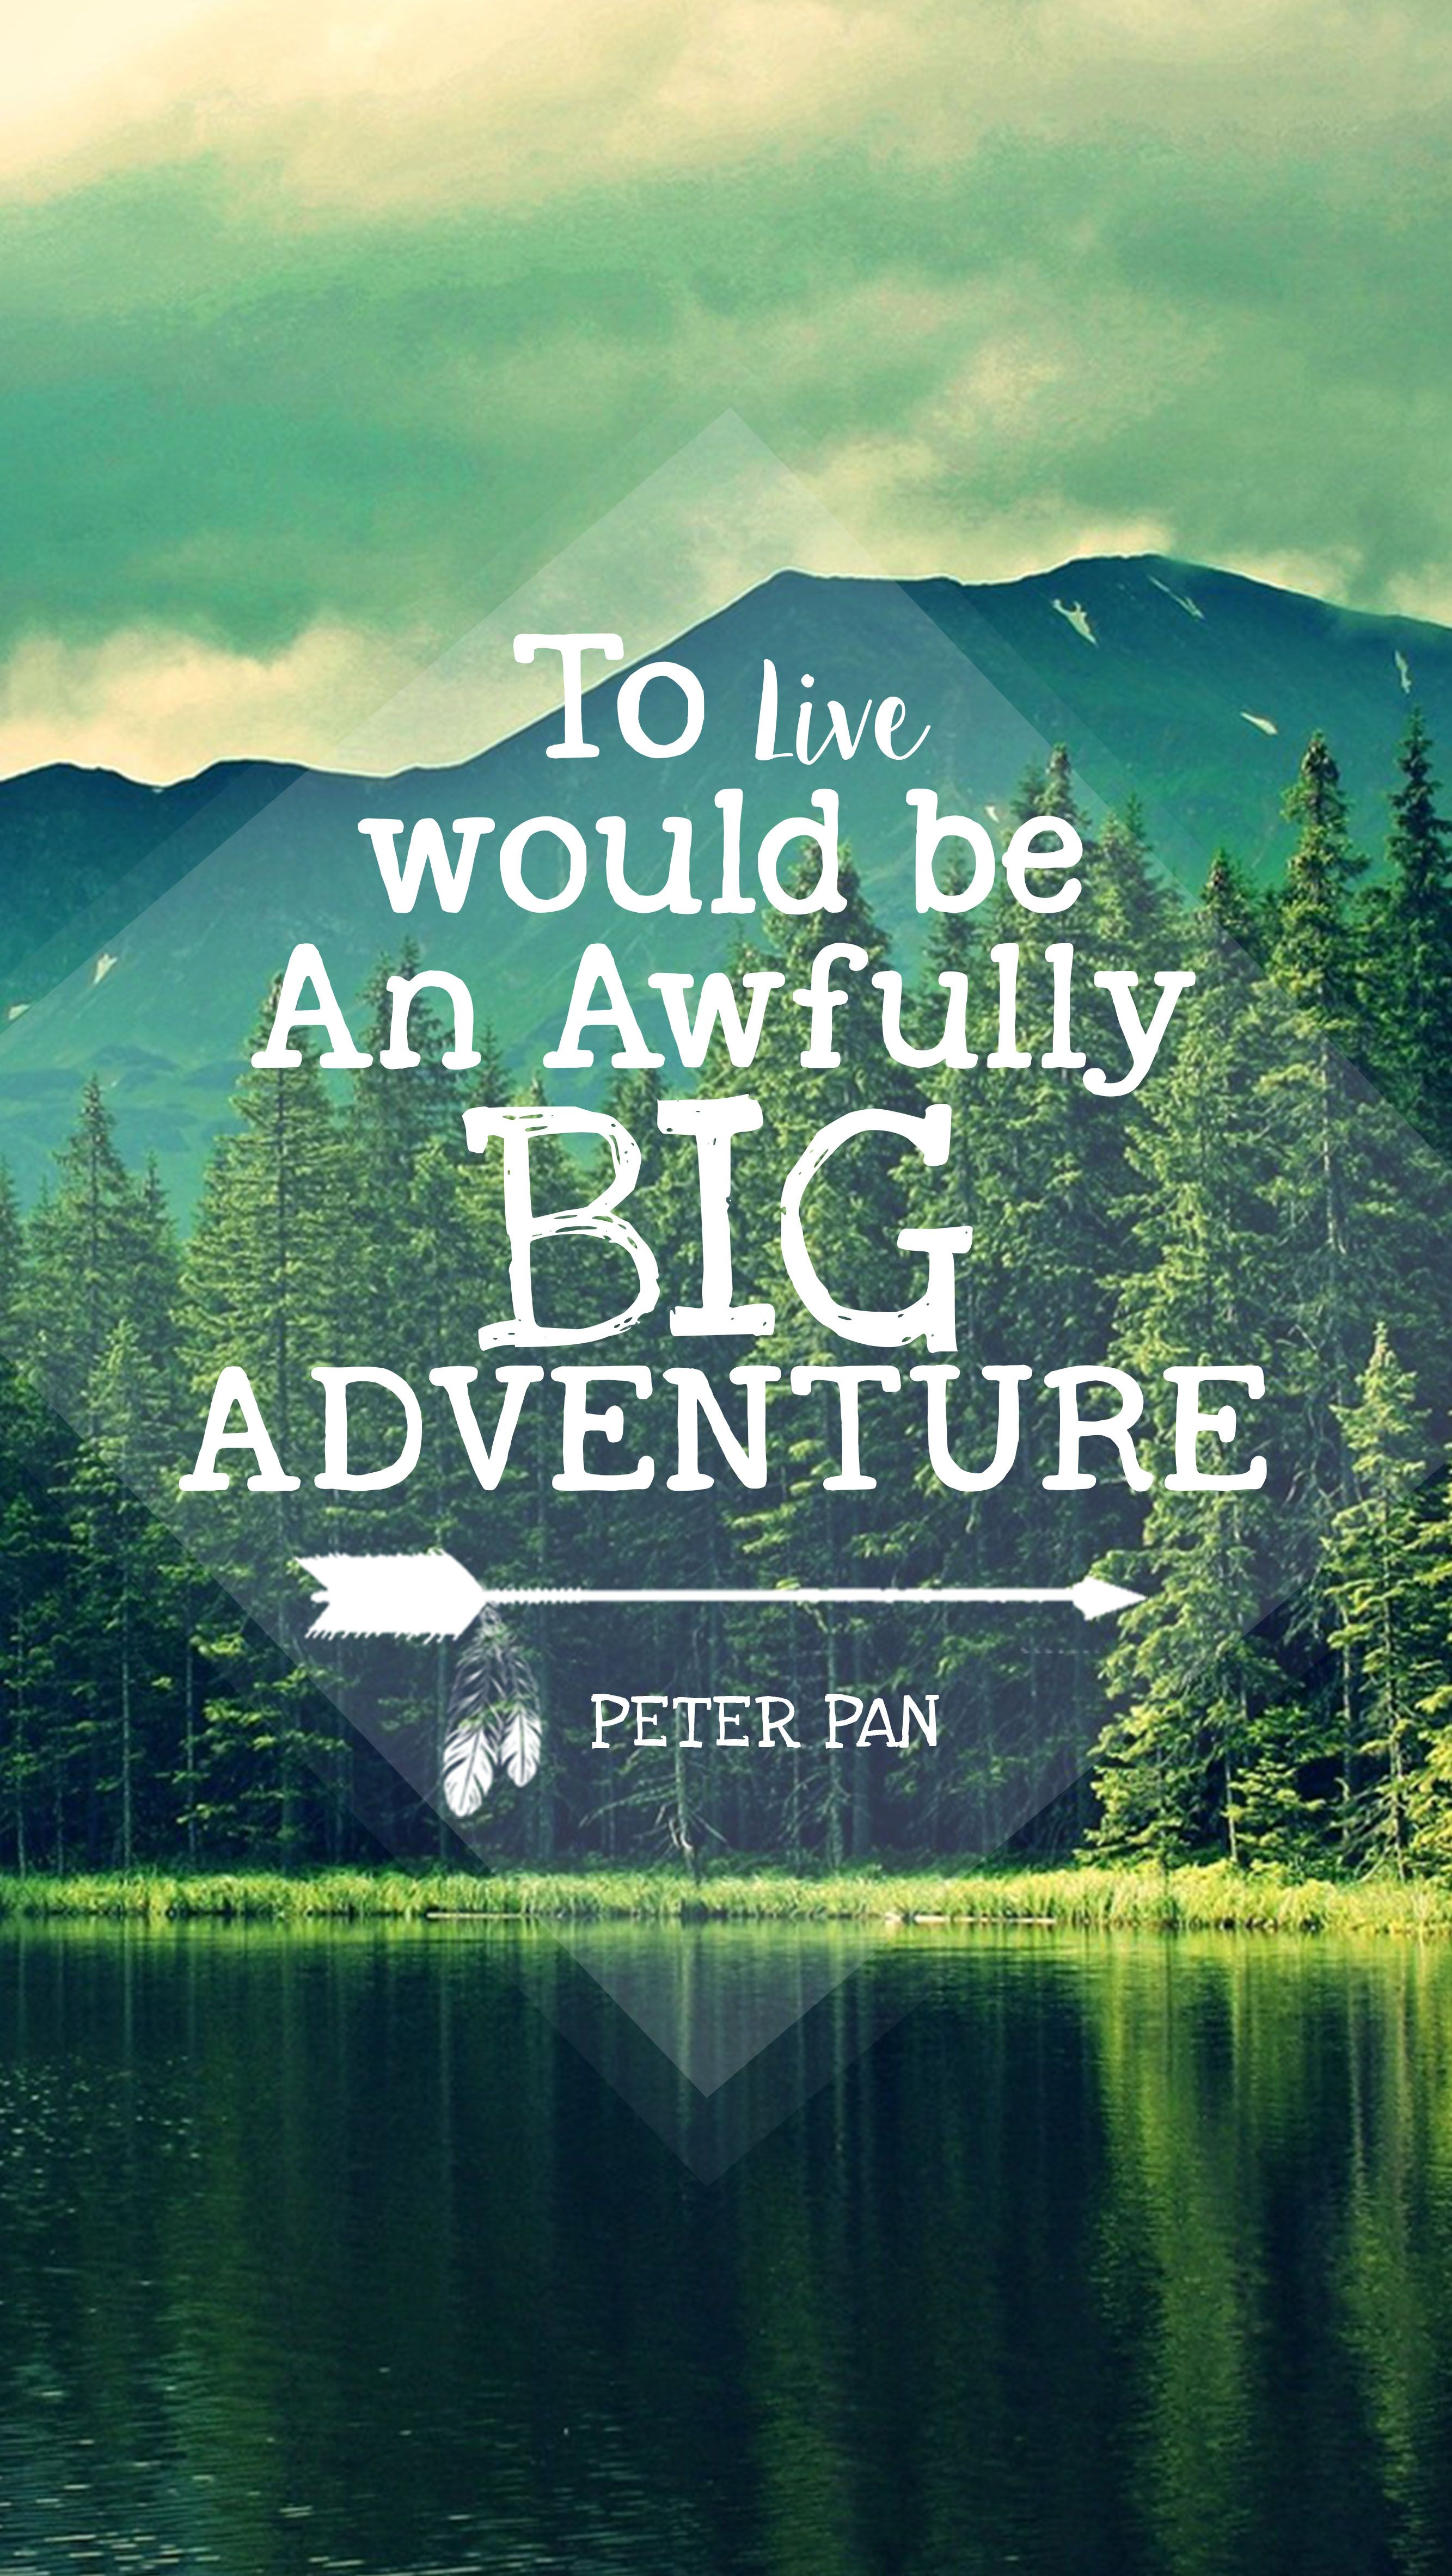 peter pan quote iPhone wallpaper https://www.etsy.com/shop ...